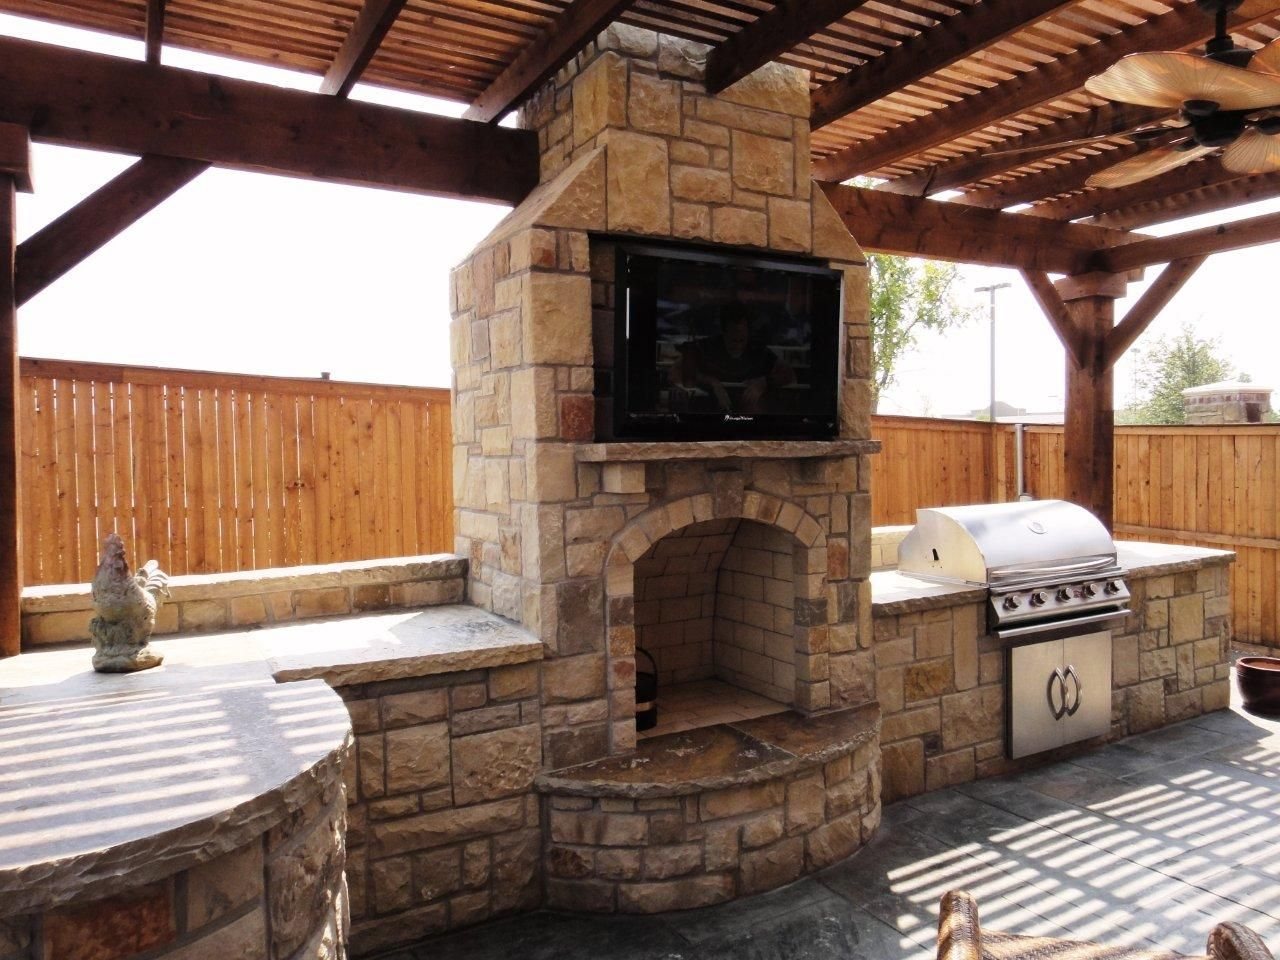 Dallas Kitchen Design Extraordinary Outdoor Kitchen Supplies Stone Oven  Best Kitchen Design Ideas Decorating Inspiration